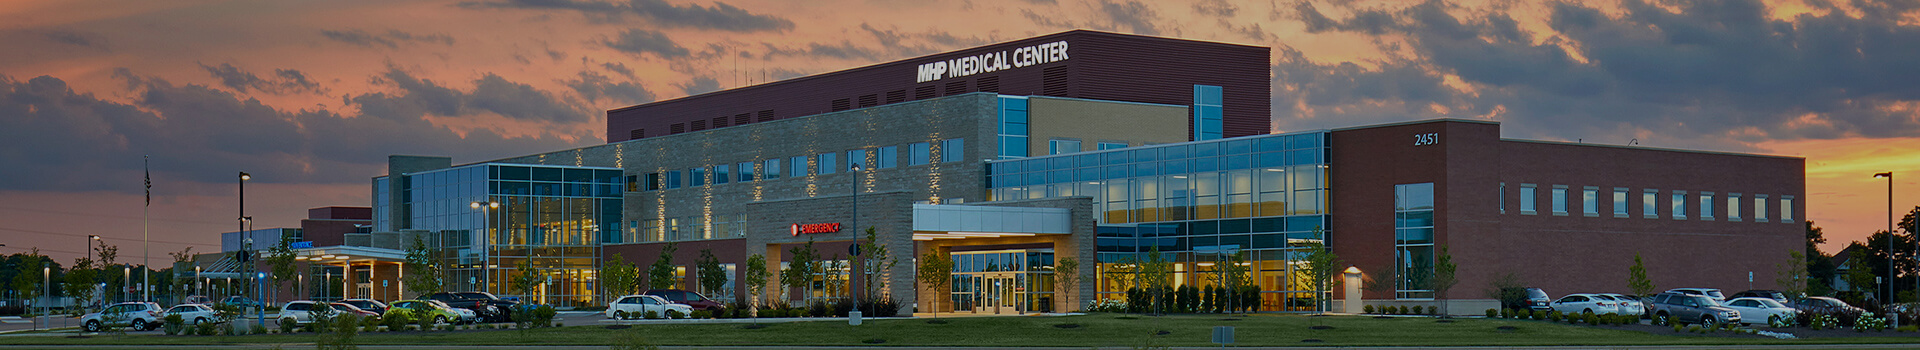 Major Health Partners Medical Center facility with a sunset background